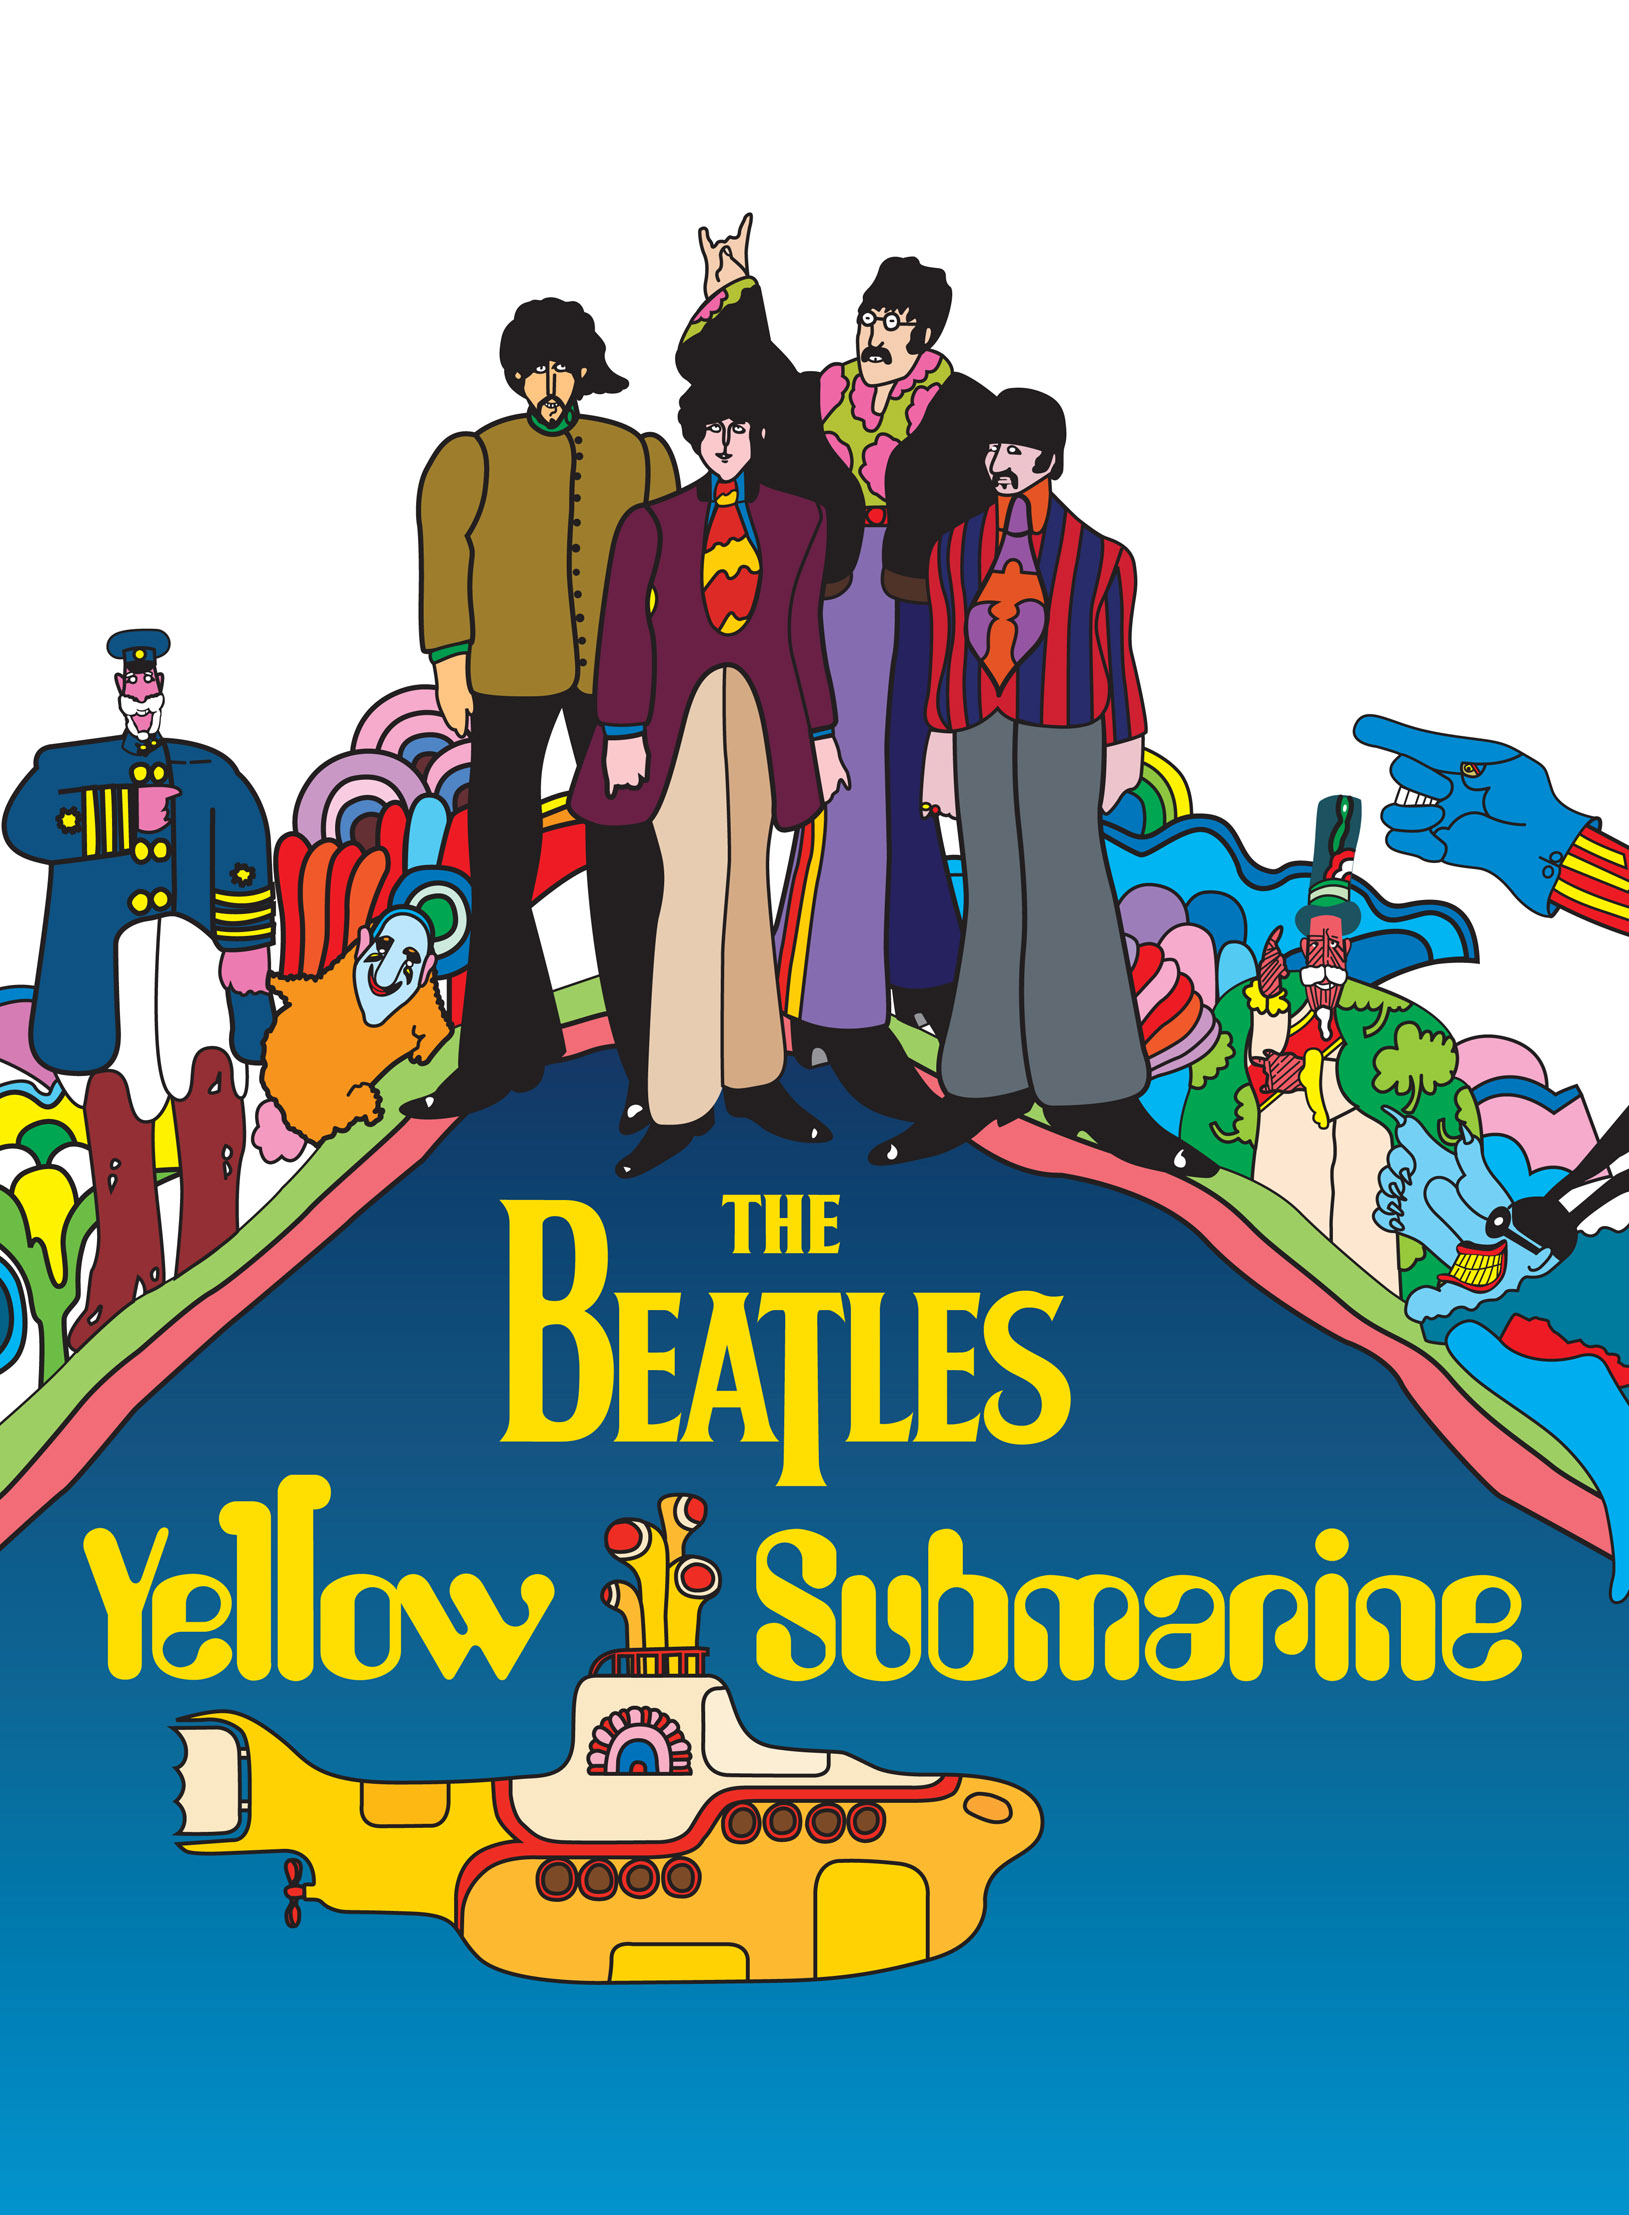 YELLOW SUBMARINE FEATURE FILM RESTORED FOR JUNE RELEASE  #0086BE 1629 2215